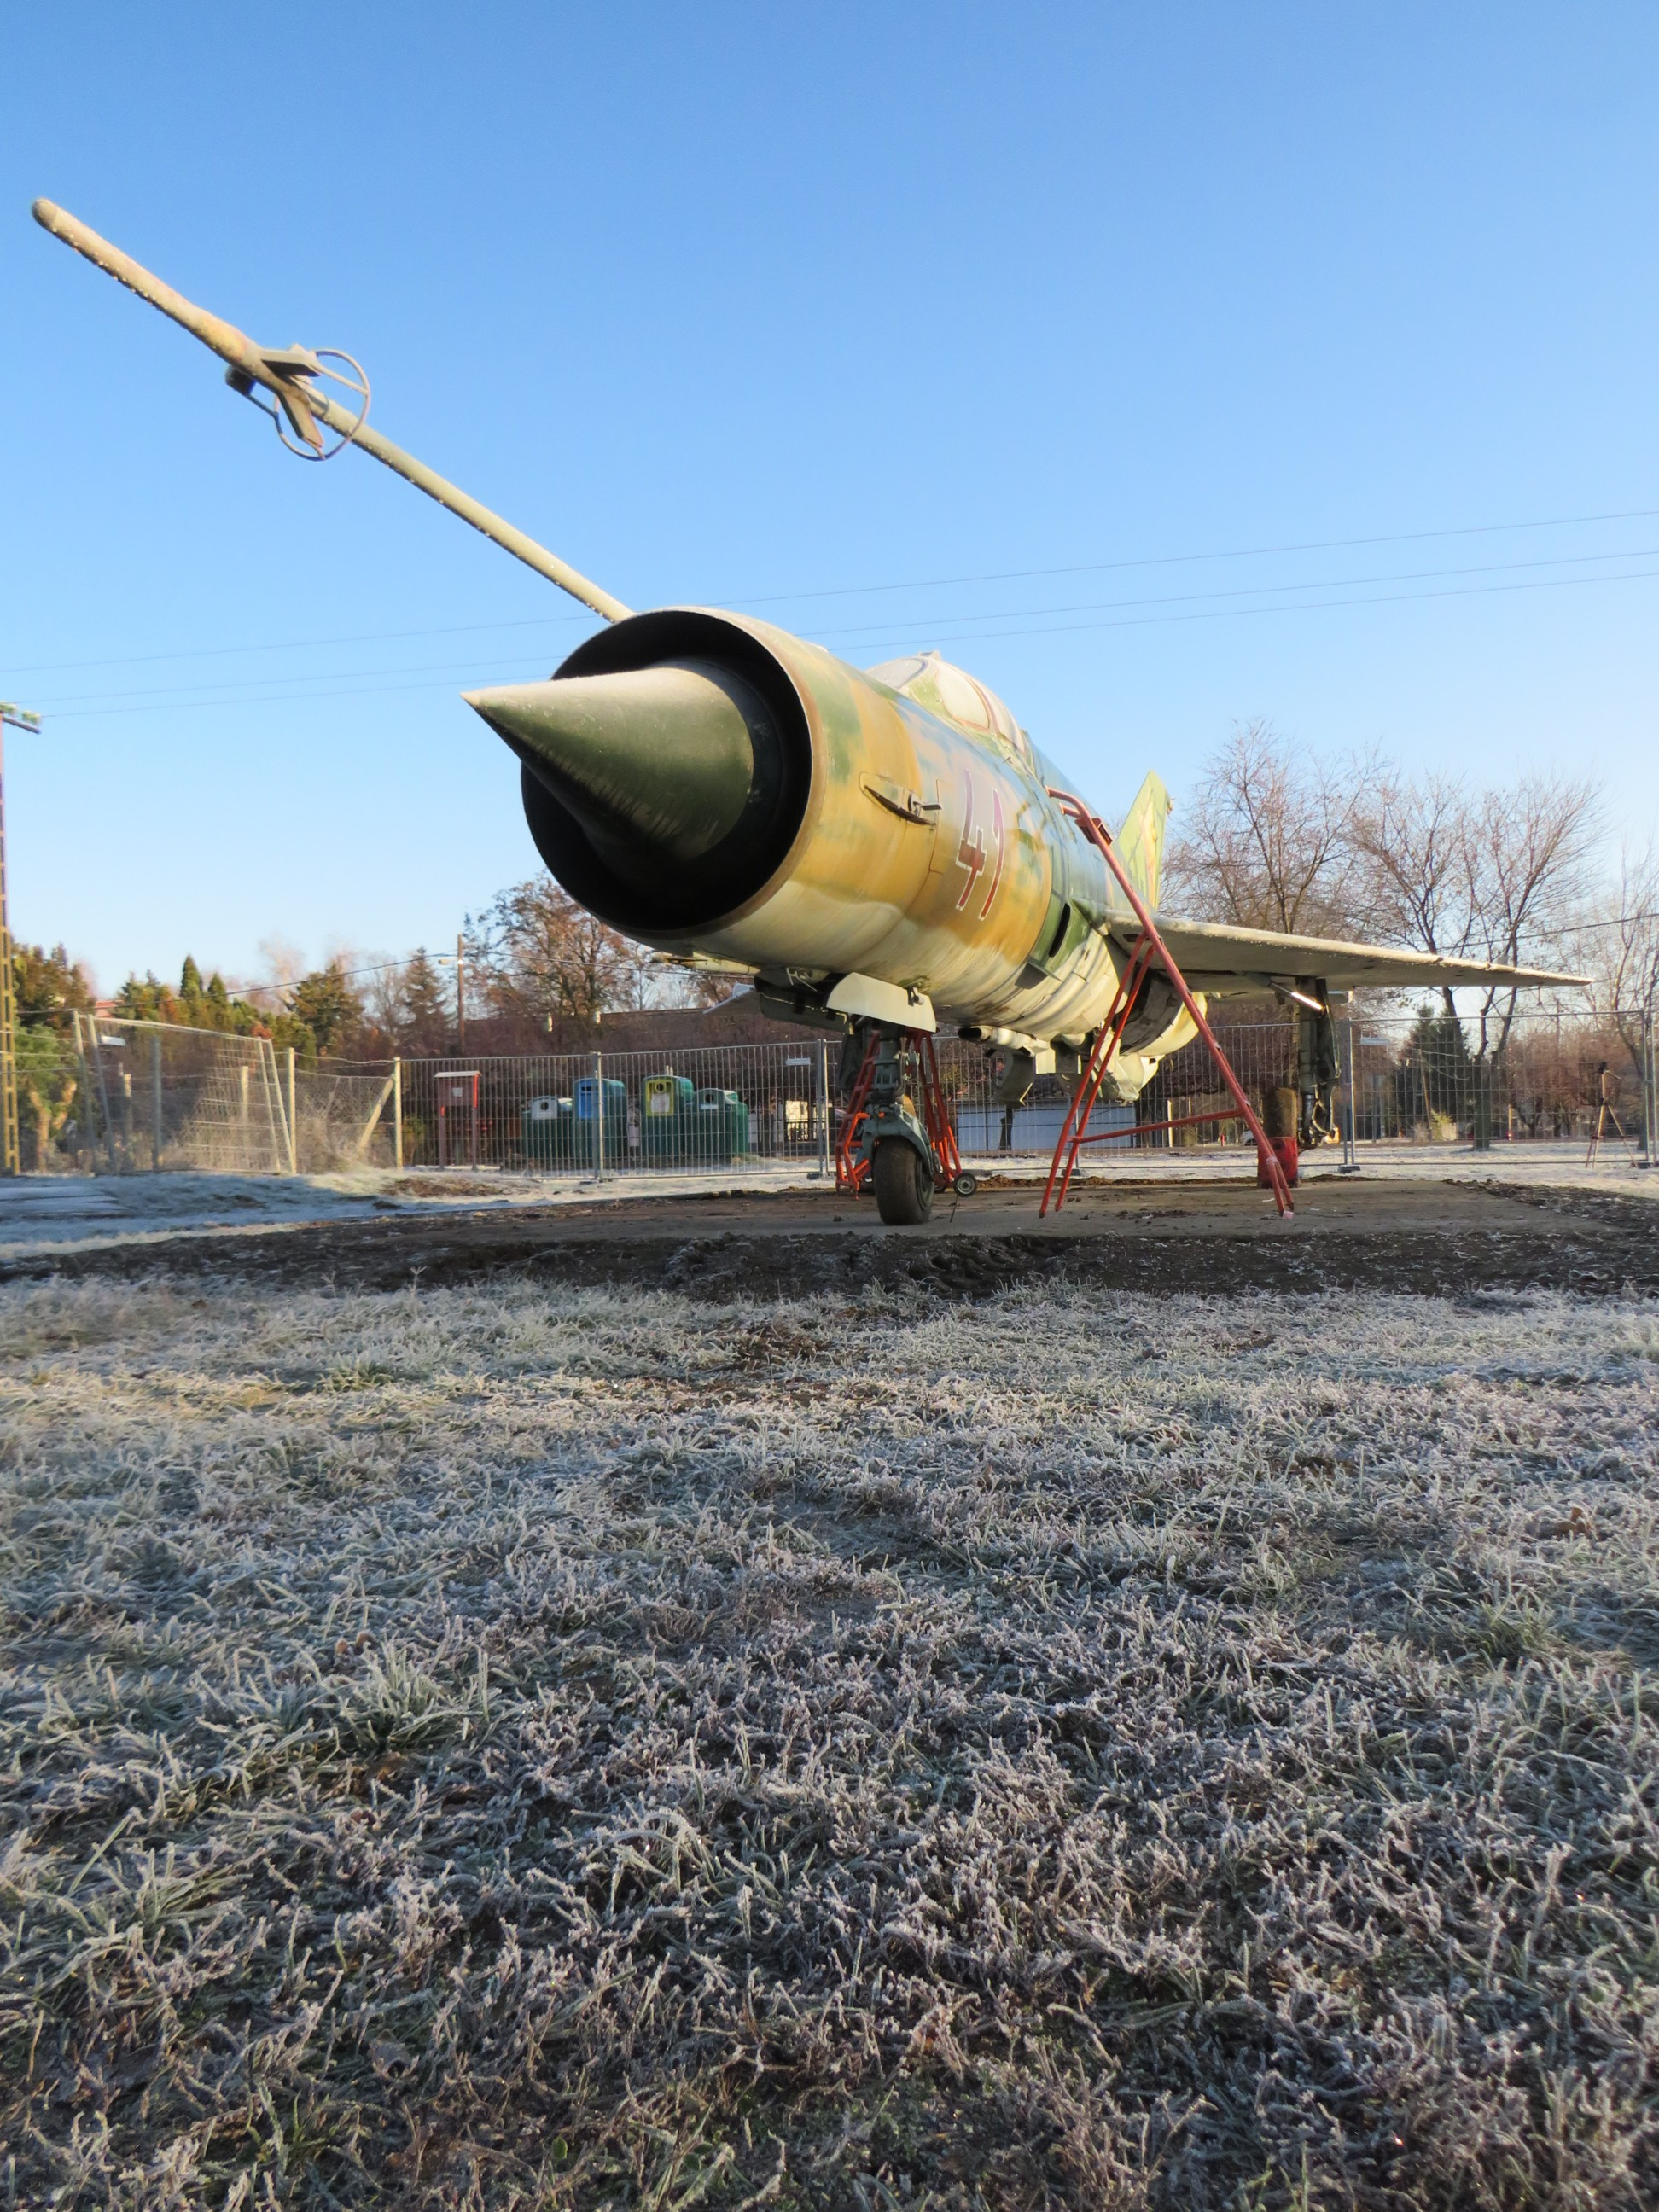 The airframe is soon to be restored